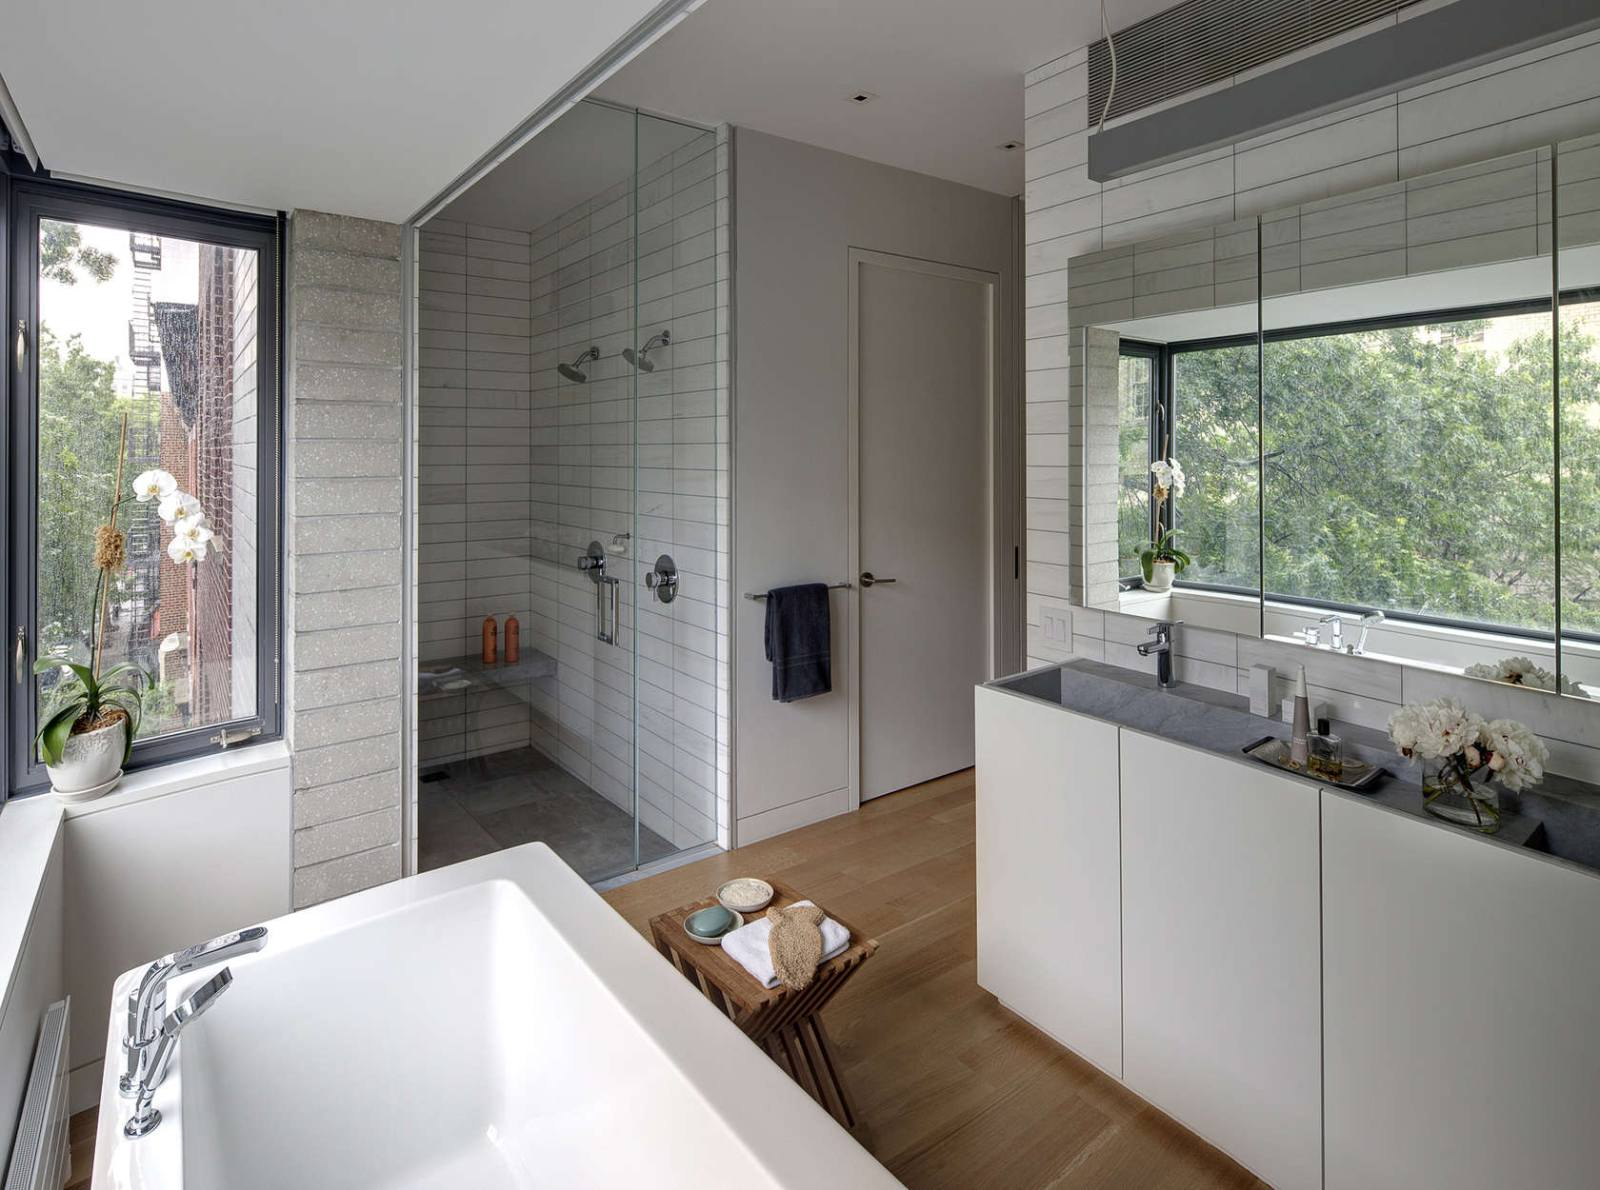 Stylish townhouse interior in new york for Townhouse bathroom ideas